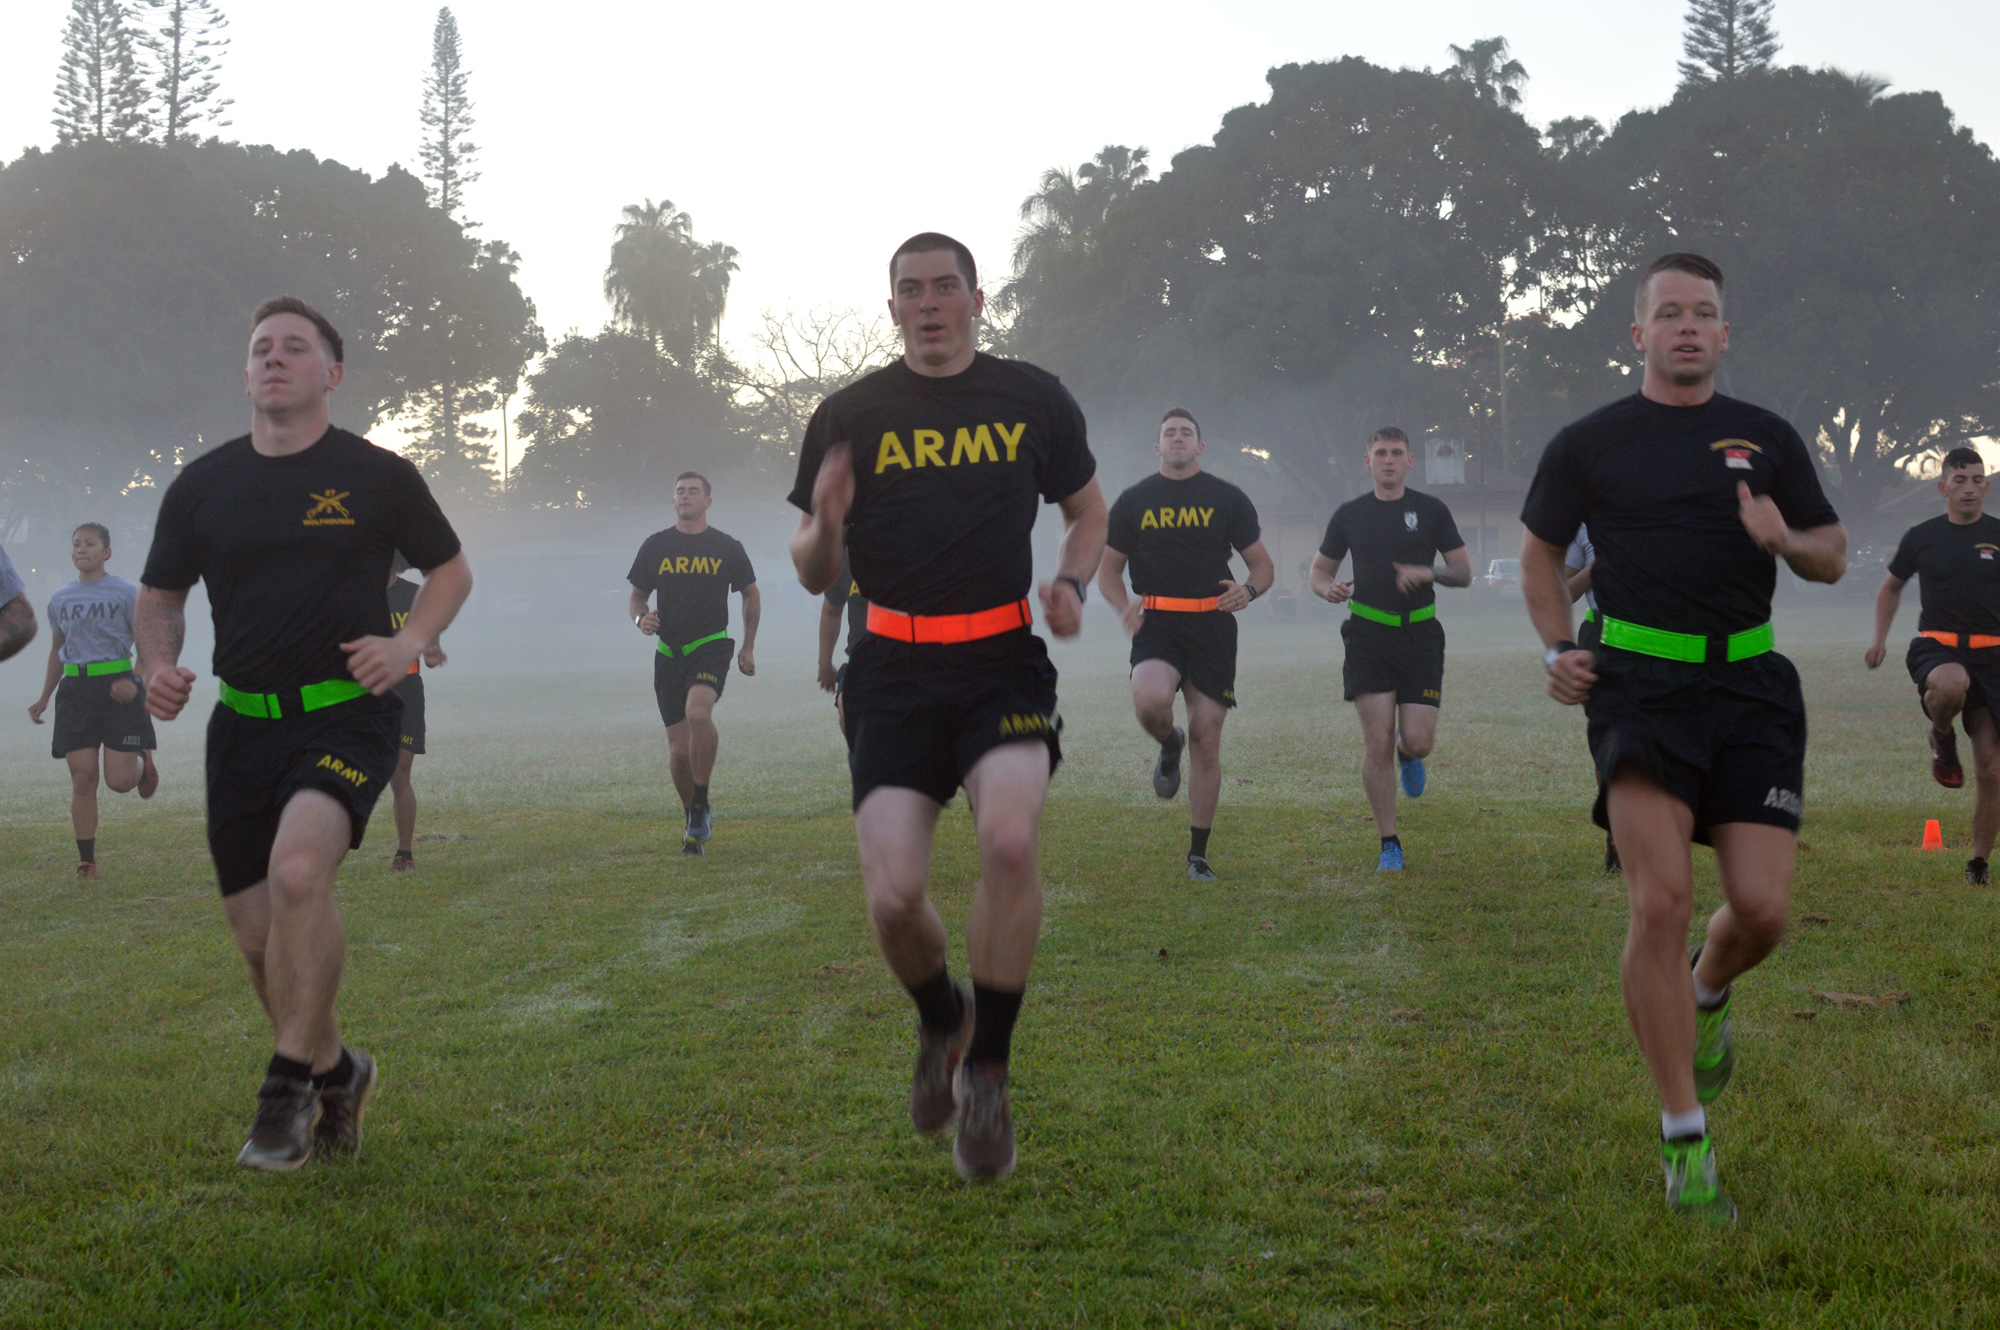 Soldiers assigned to 3rd Brigade Combat Team (BCT), 25th Infantry Division, (ID) perform endurance and mobility training March 13 at Watts Field on Schofield Barracks, Hawaii. The Soldiers participated in a weeklong advanced physical training course. In 2012, after negative input from a Soldier online survey on the Army physical fitness uniform, the Army updated the attire with a new design, material and more sizes to address the concerns. (U.S. Army photo by Staff Sgt. Armando R. Limon, 3rd BCT, 25th ID)